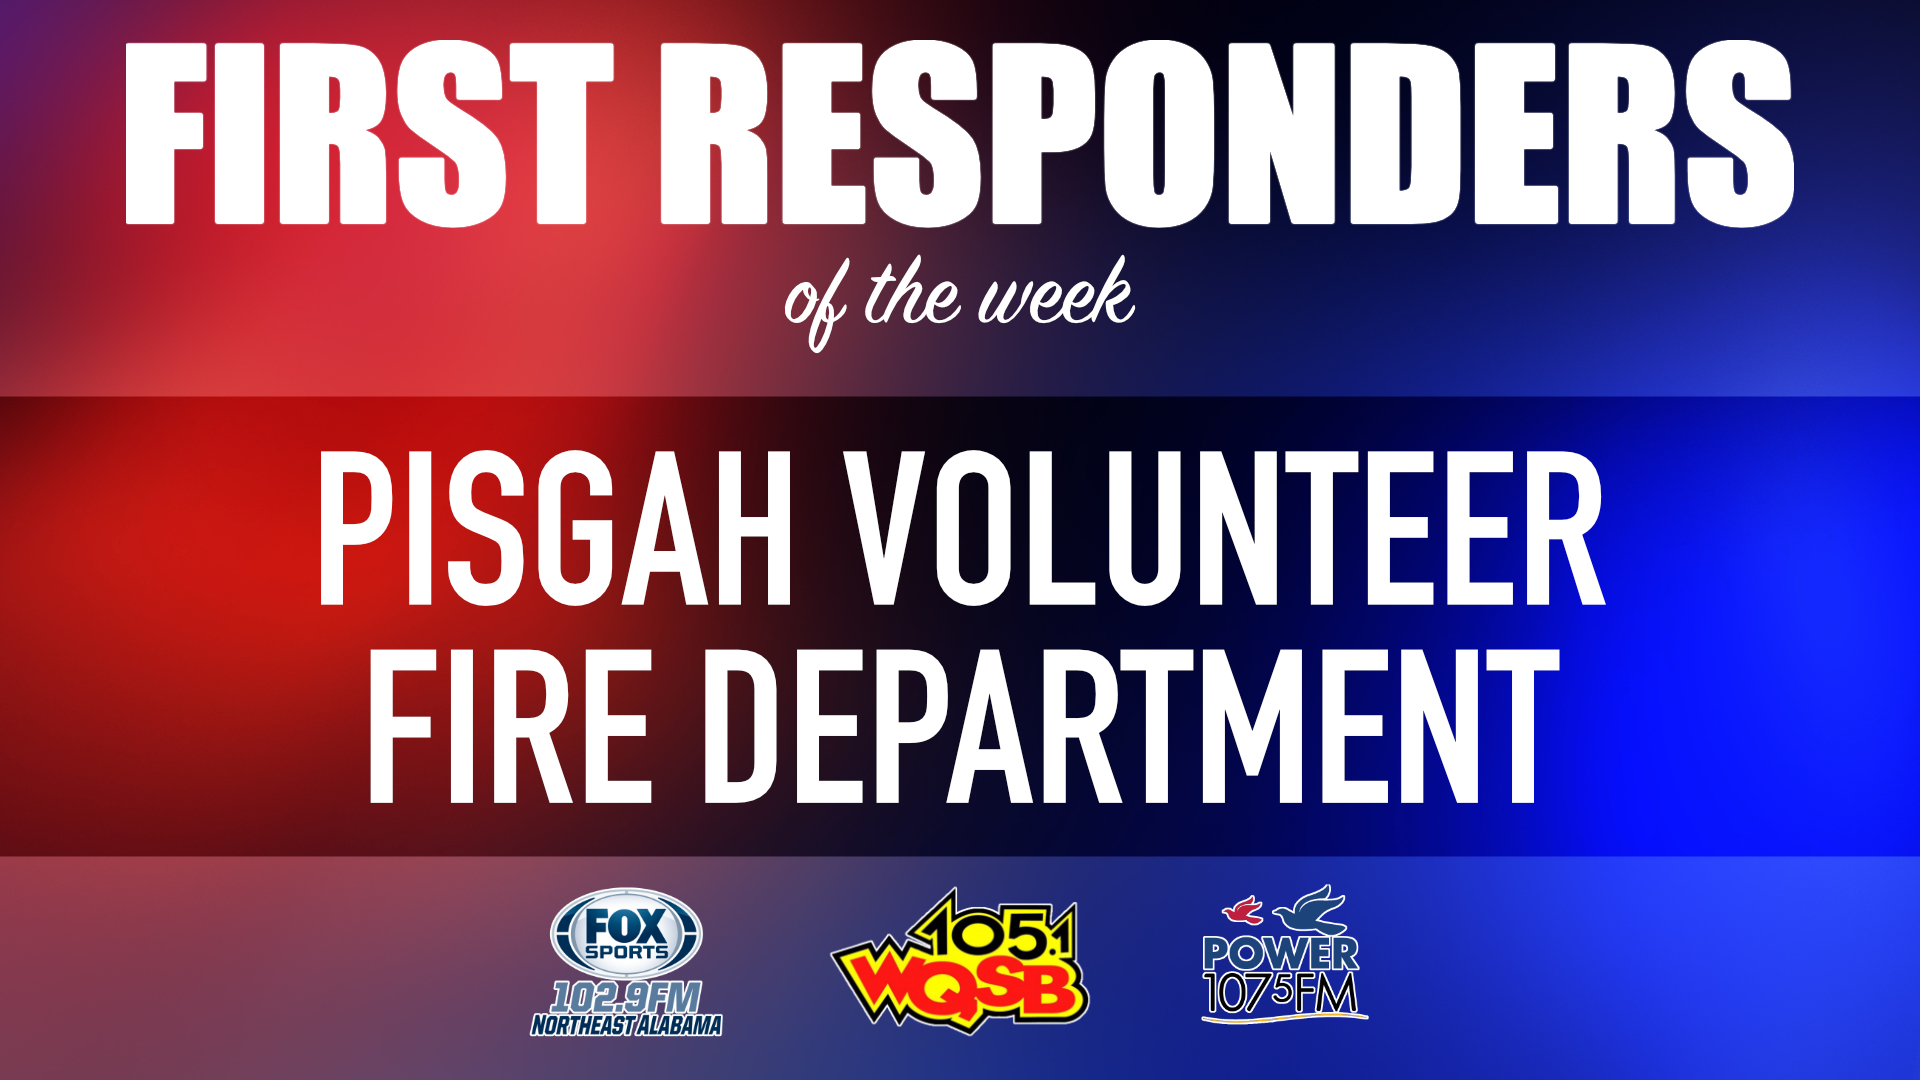 WQSB First Responders of the Week 2021 July 27th, 2021